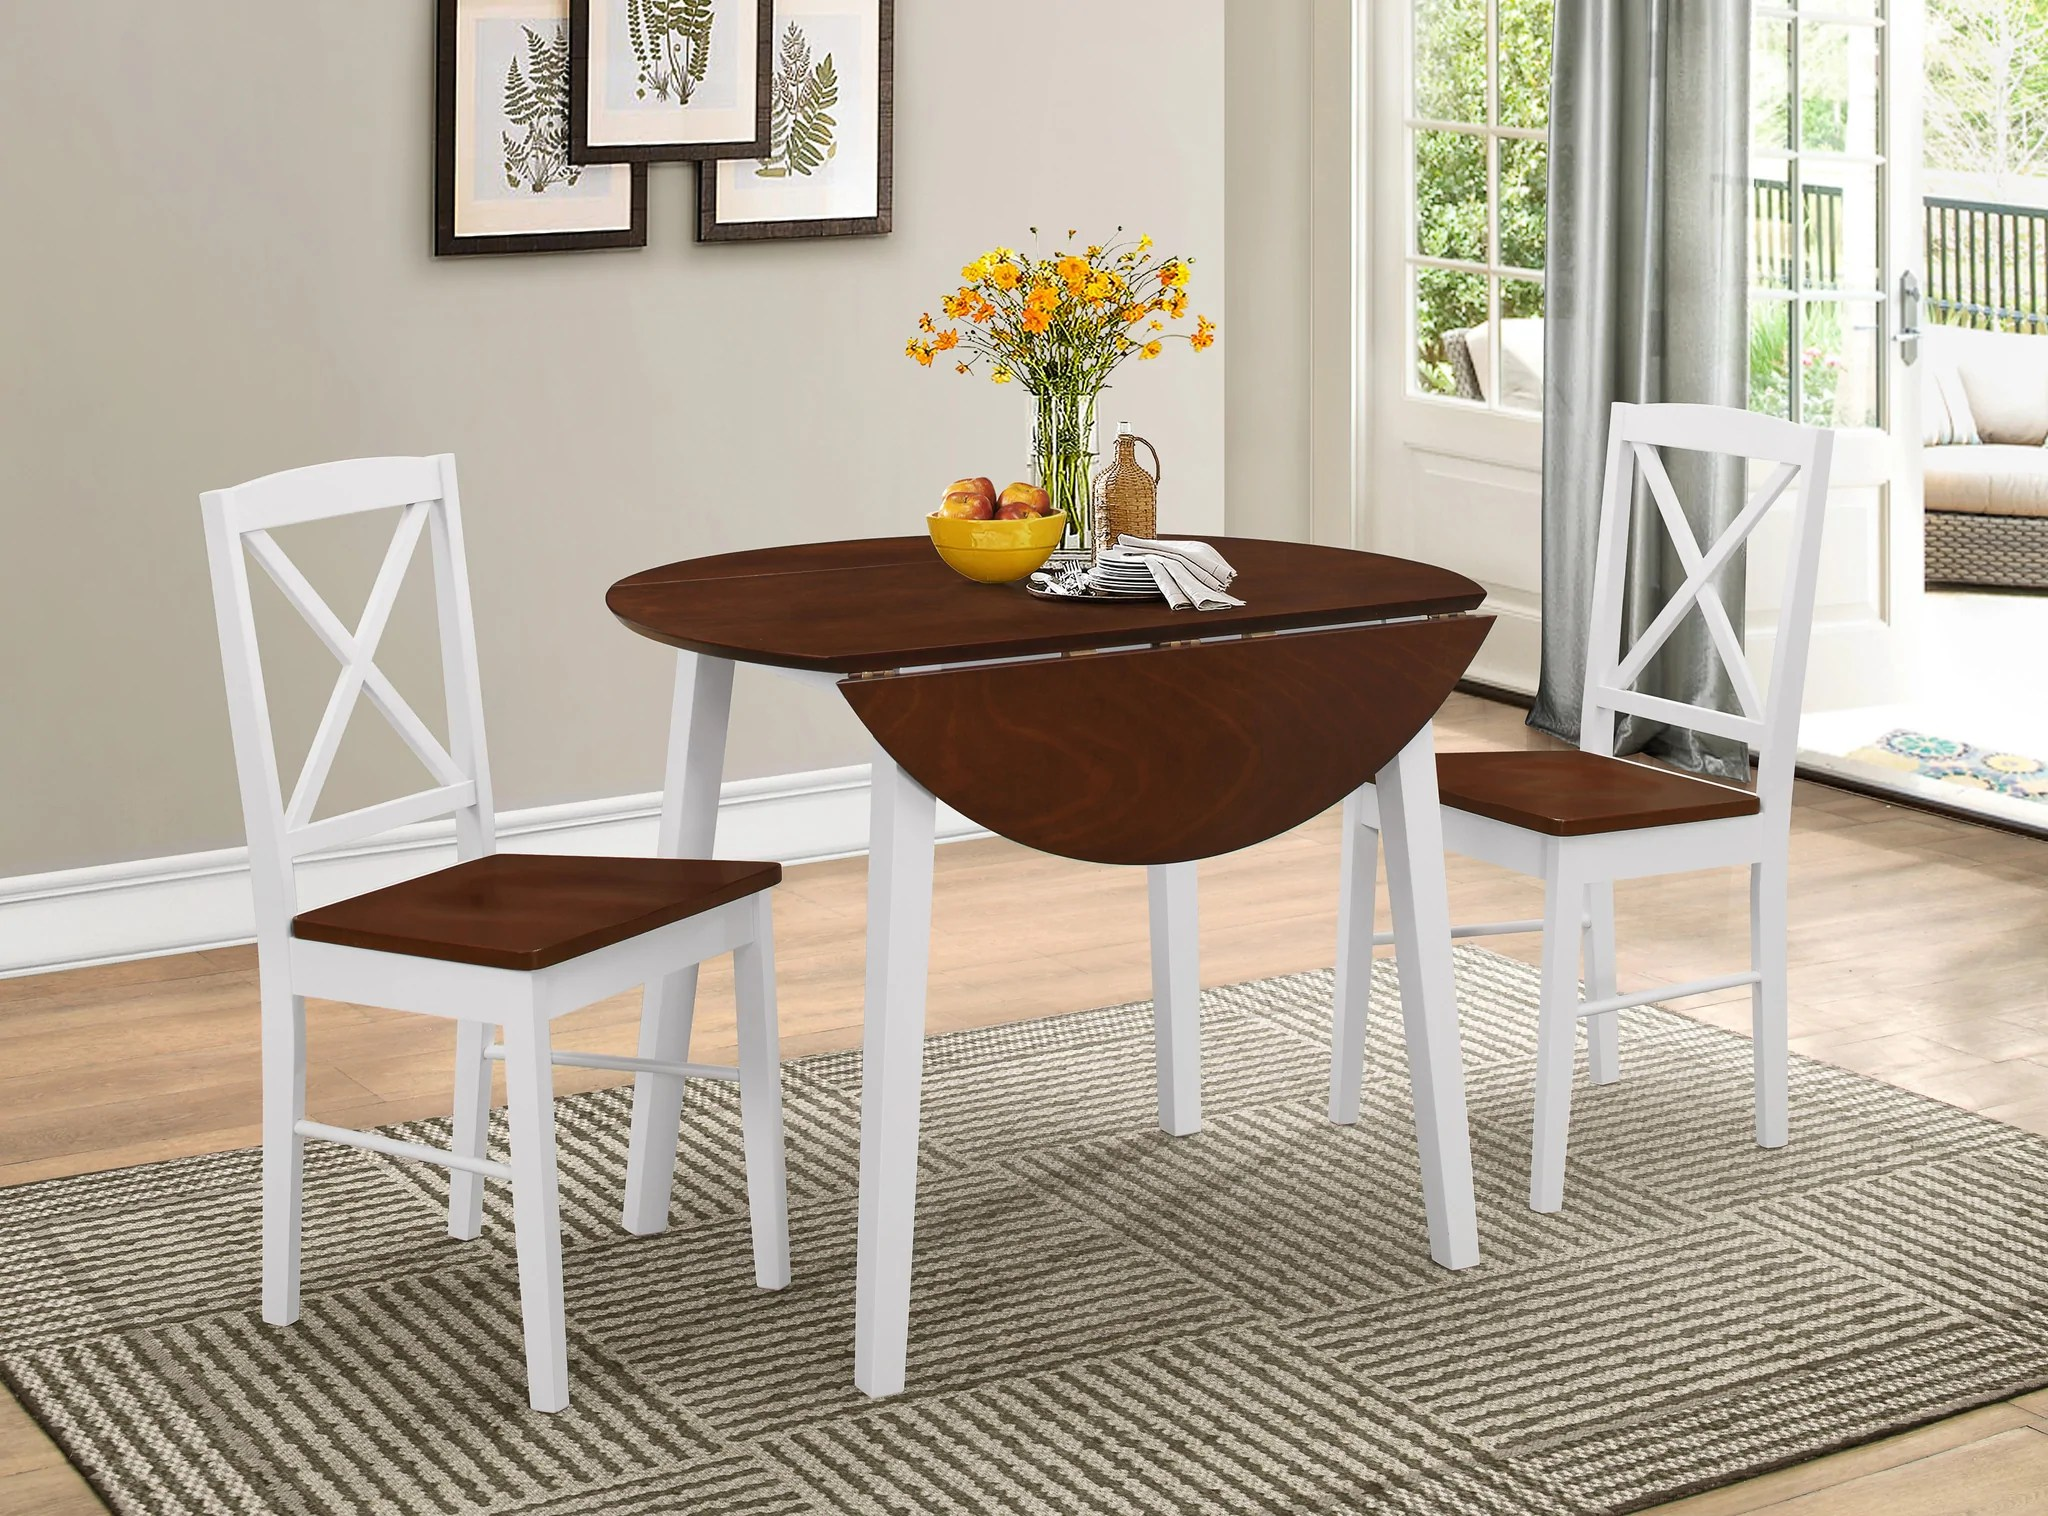 kitchen dinette chairs on casters gaines 3 piece dining set cherry white wood 39 round drop leaf table 2 side